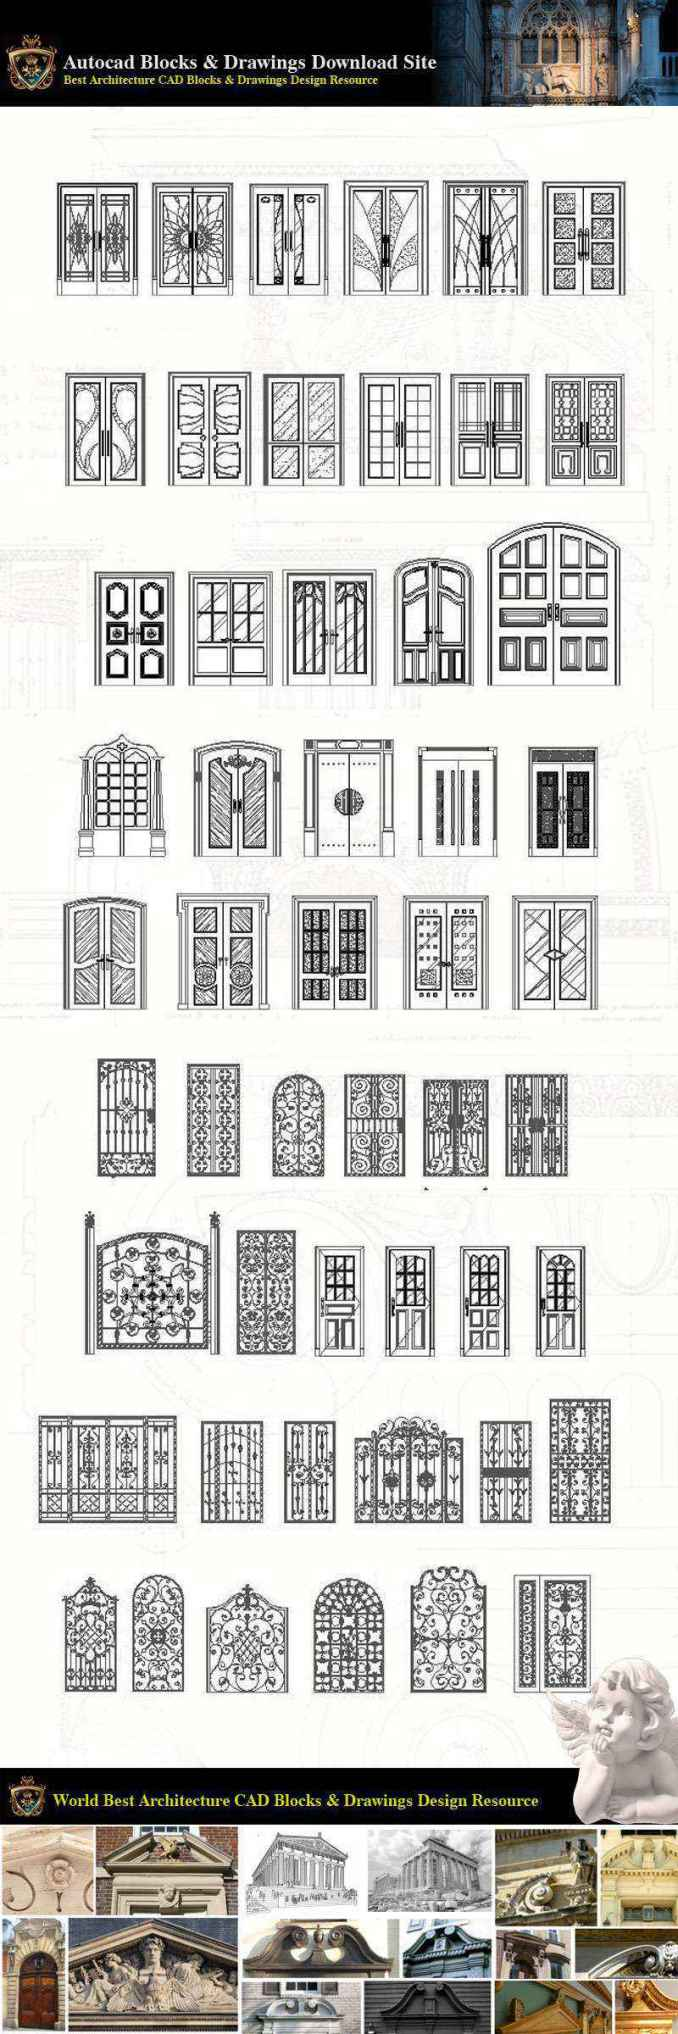 ★【Neoclassical Style Decor CAD Design Elements V 8】Neoclassical interior,  Home decor,Traditional home decorating,Decoration